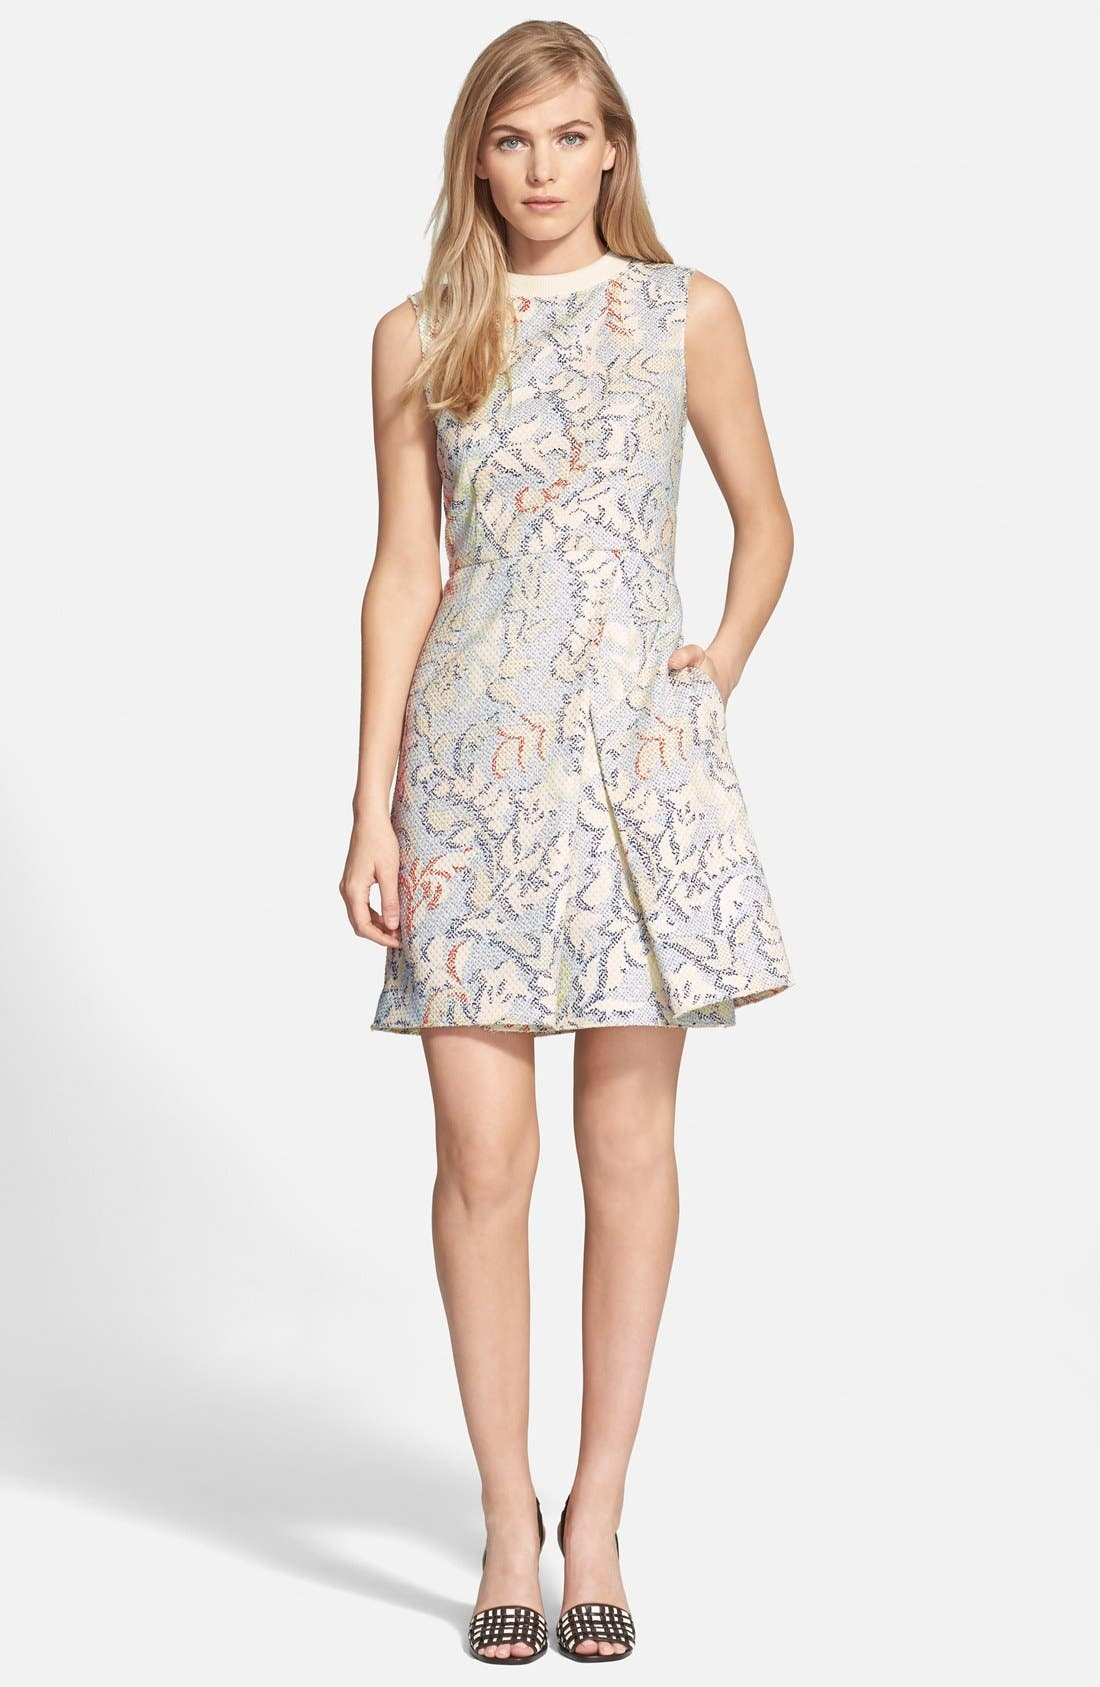 Alternate Image 1 Selected - Tory Burch Stretch Jacquard Fit & Flare Dress